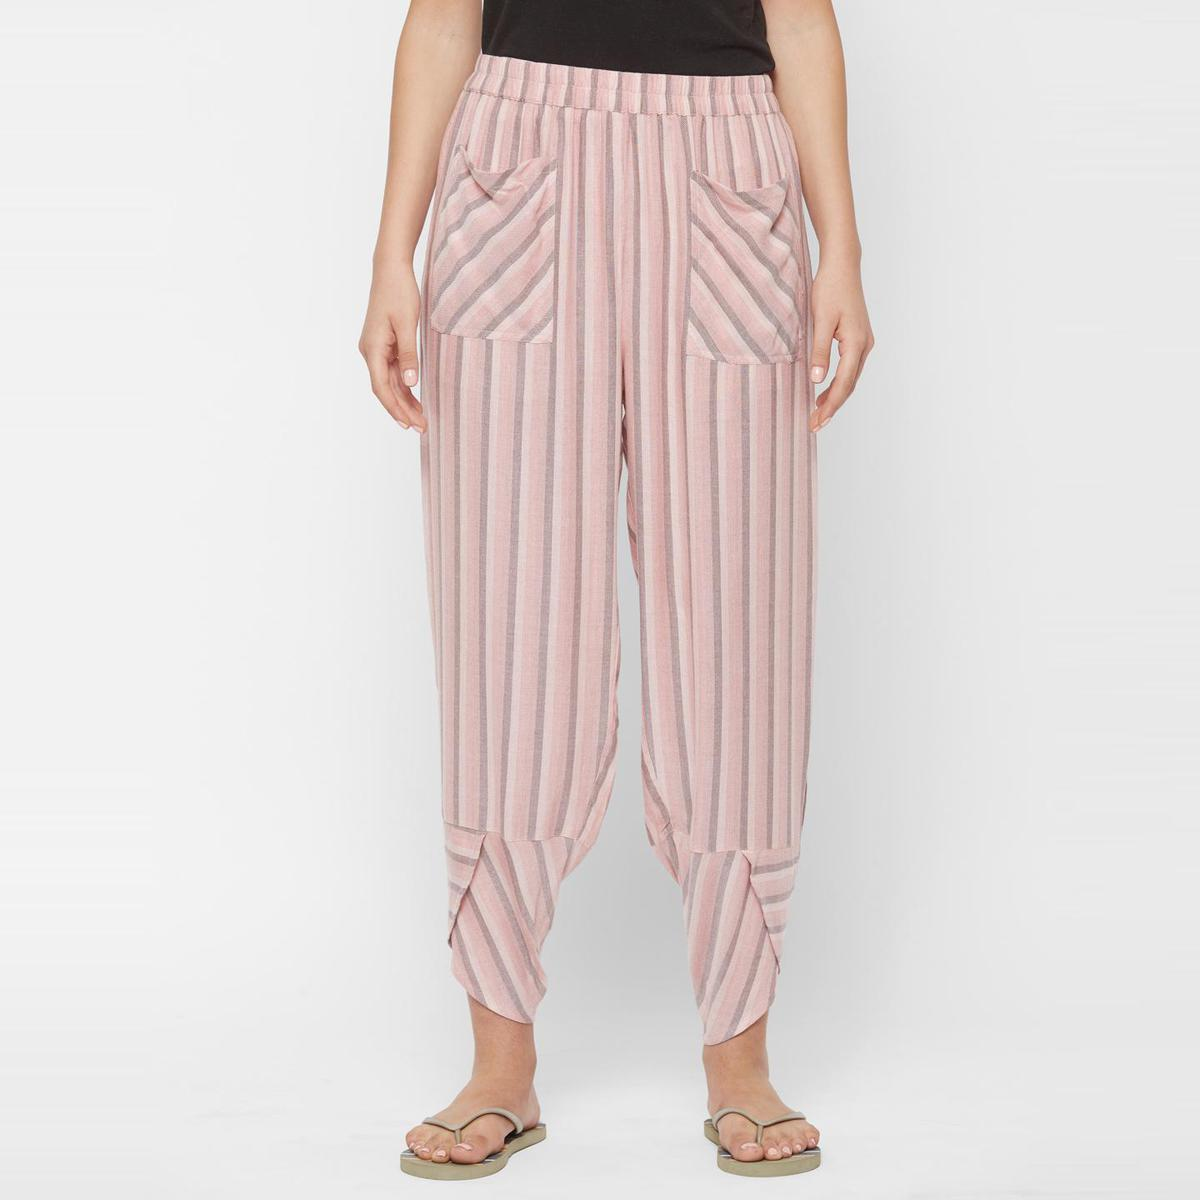 Mystere Paris - Pink Grey Colored Classic Striped Rayon Lounge Pant